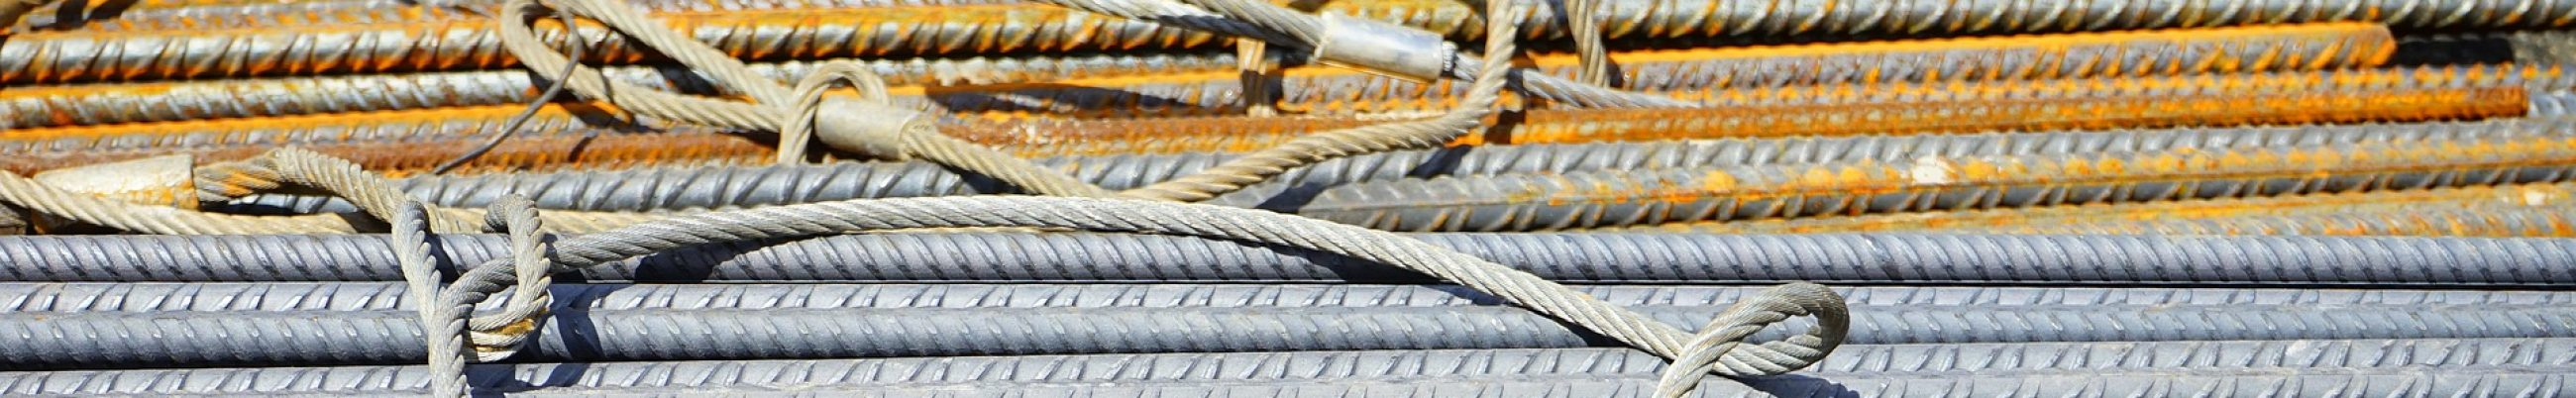 Difference between cast steel and Cast Iron – Krue-Nish Die